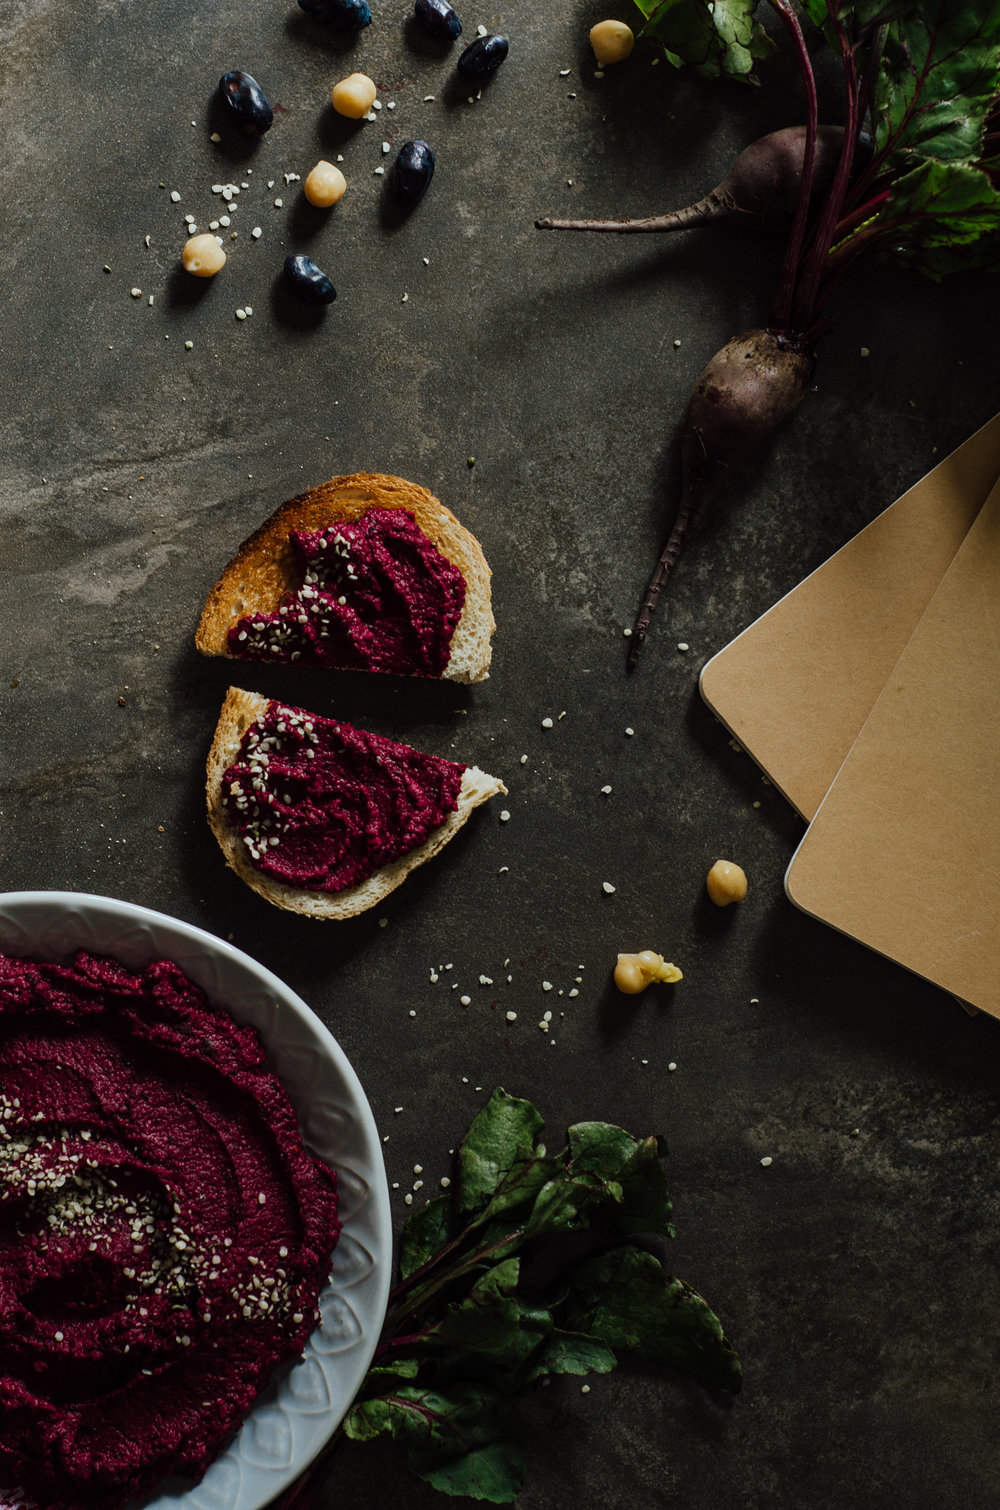 beet hummus - the nomadic wife - riverbend gardens